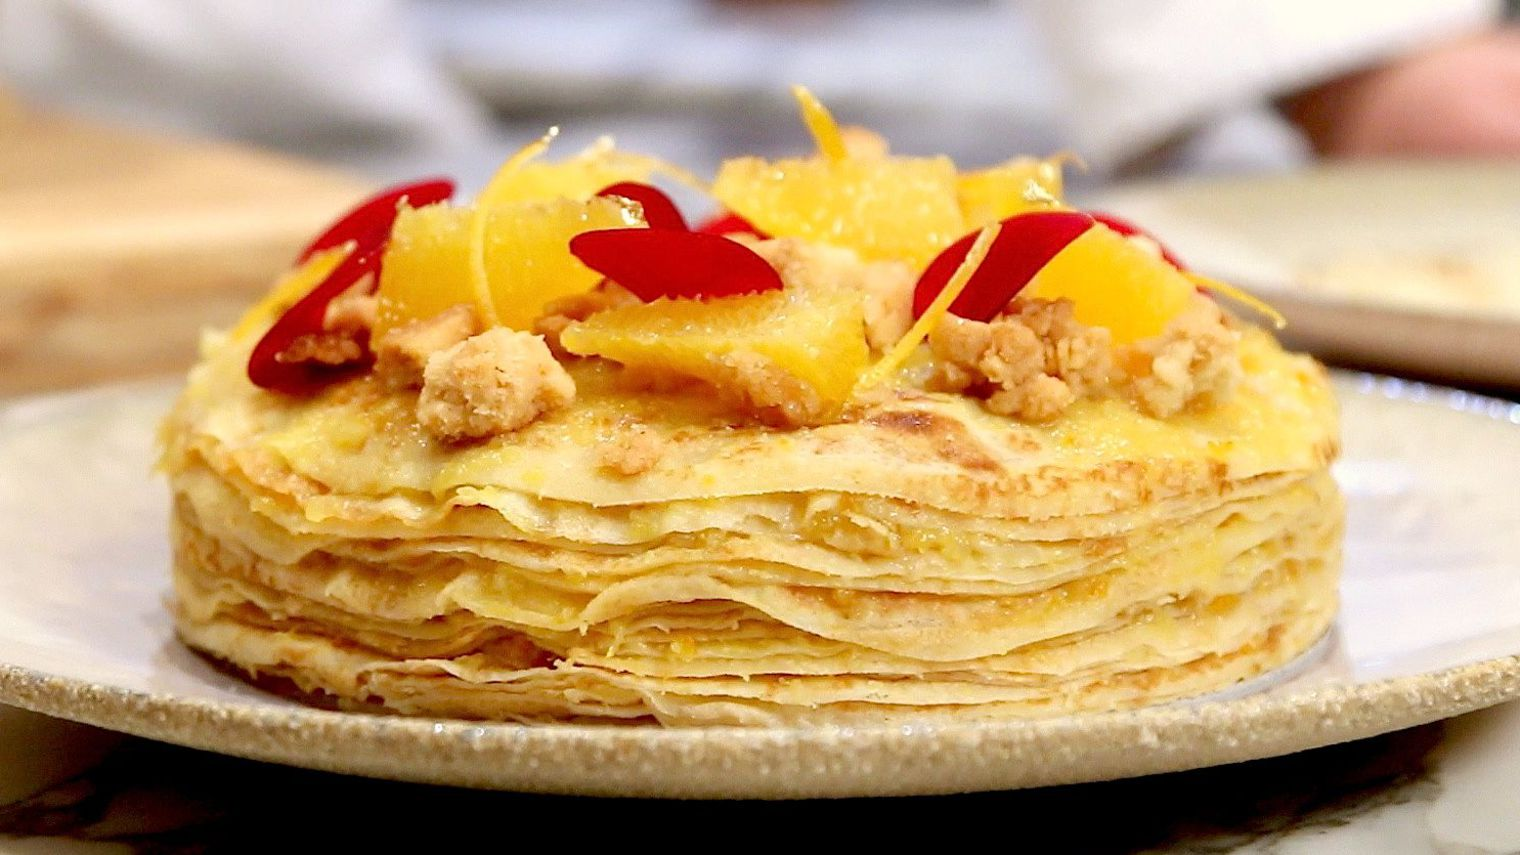 images2crepes-30.jpg